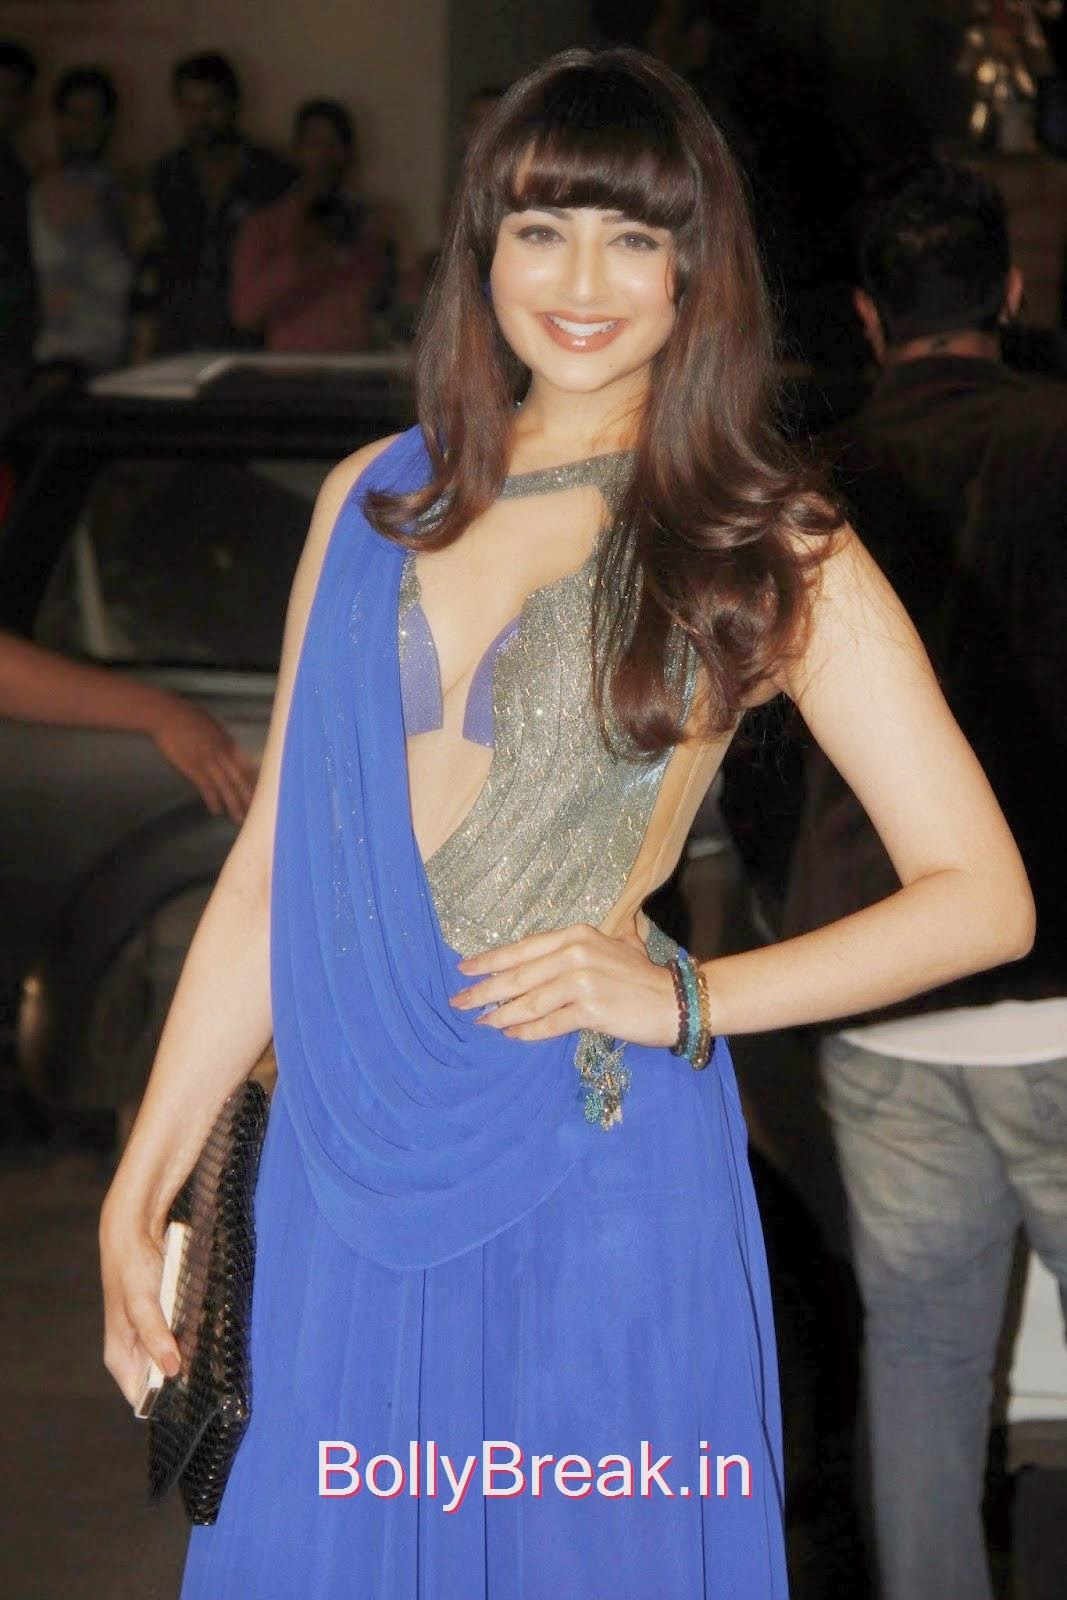 FF+4, Zoya Afroz Hot HD Pics in Blue Dress From Awards Night